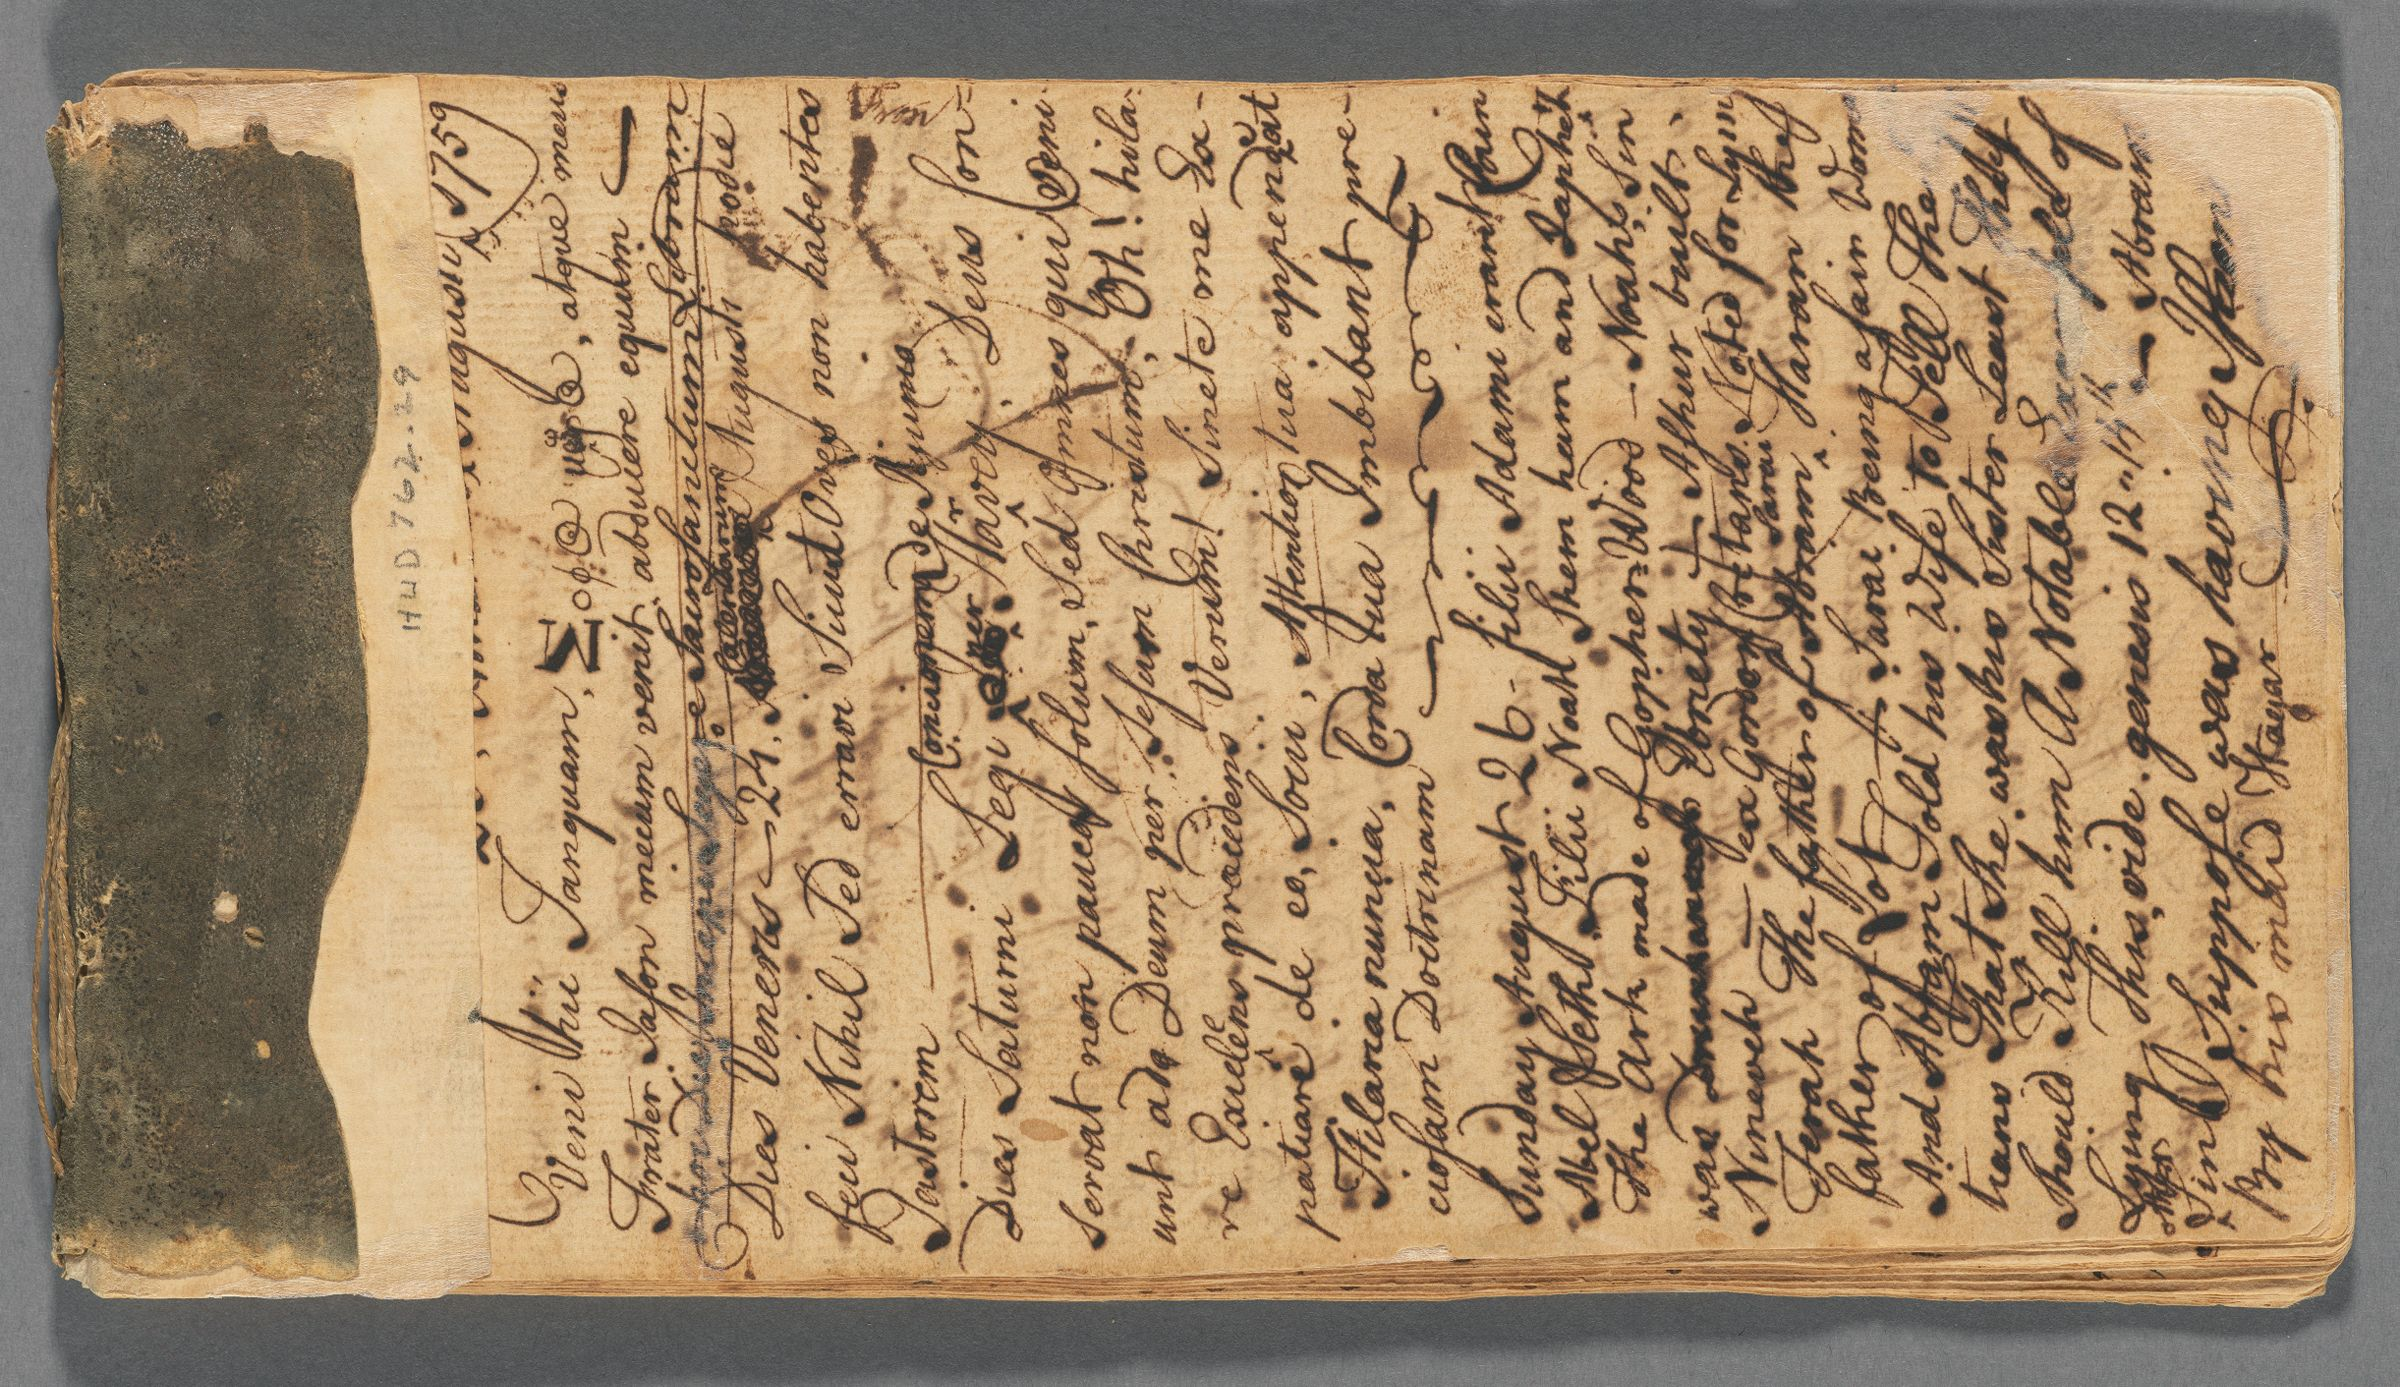 Diary and commonplace book of Peres Fobes, 1759-1760